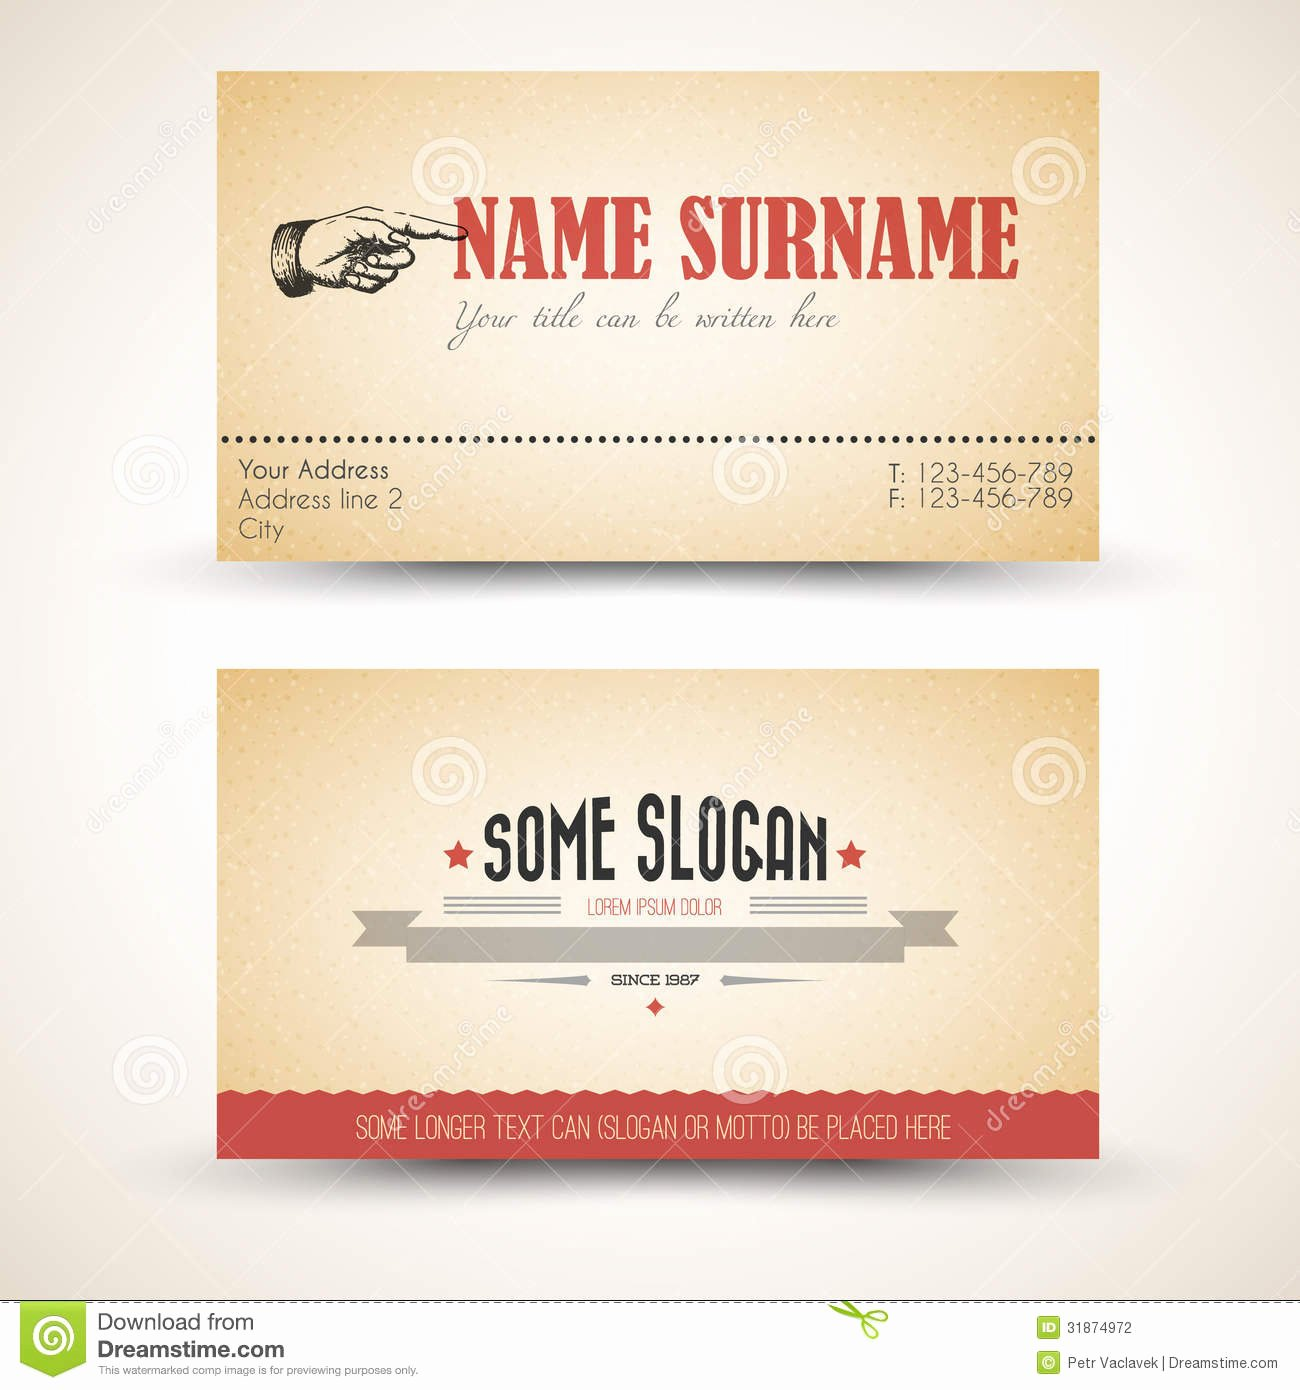 Postcard Template Front and Back New Vector Old Style Retro Vintage Business Card Template